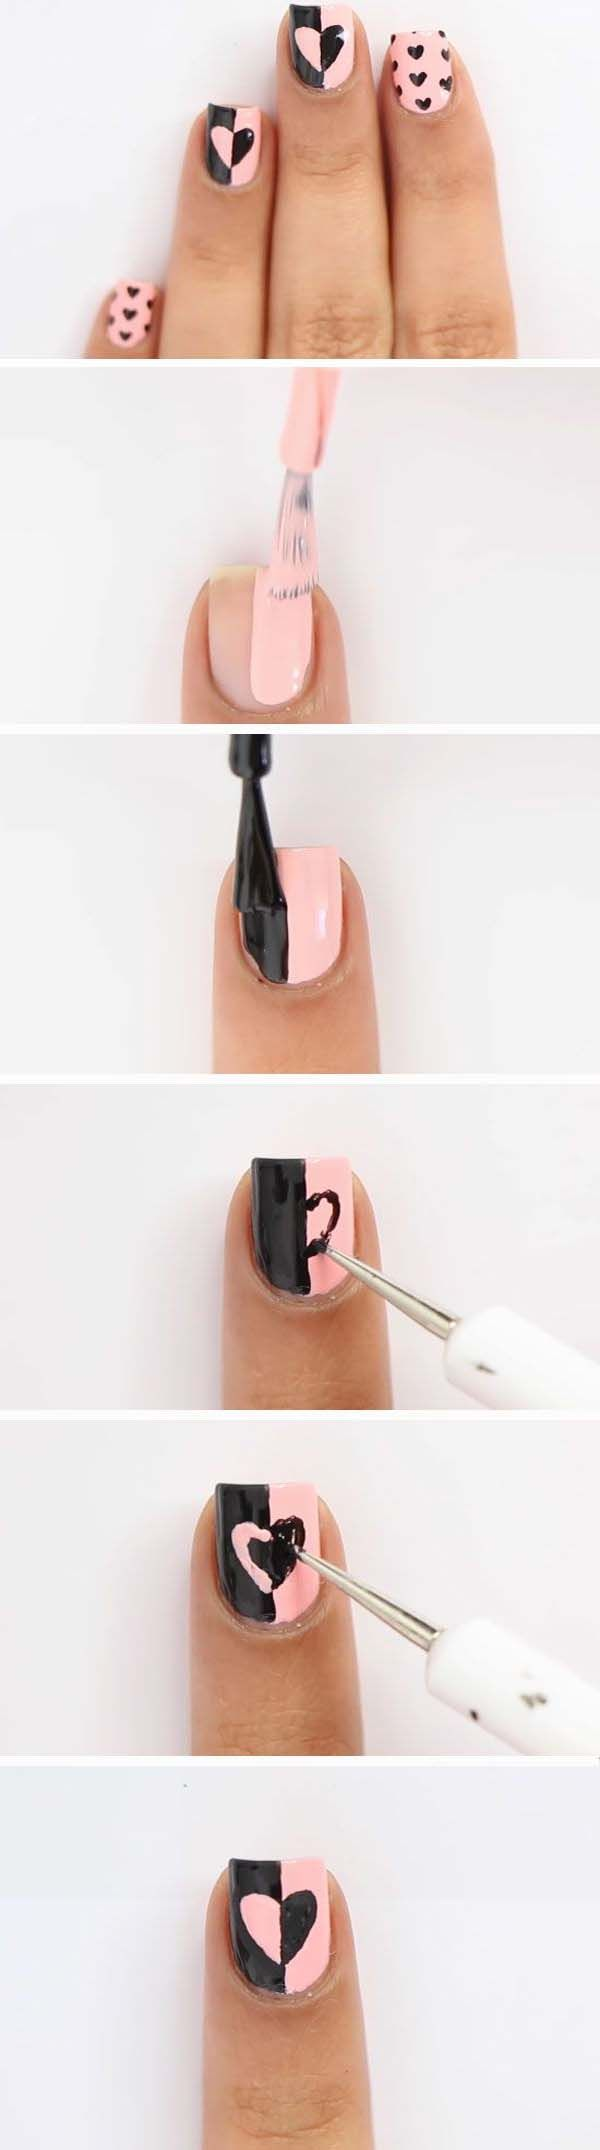 184 best Nägel images on Pinterest | Nail scissors, Makeup and Nail care